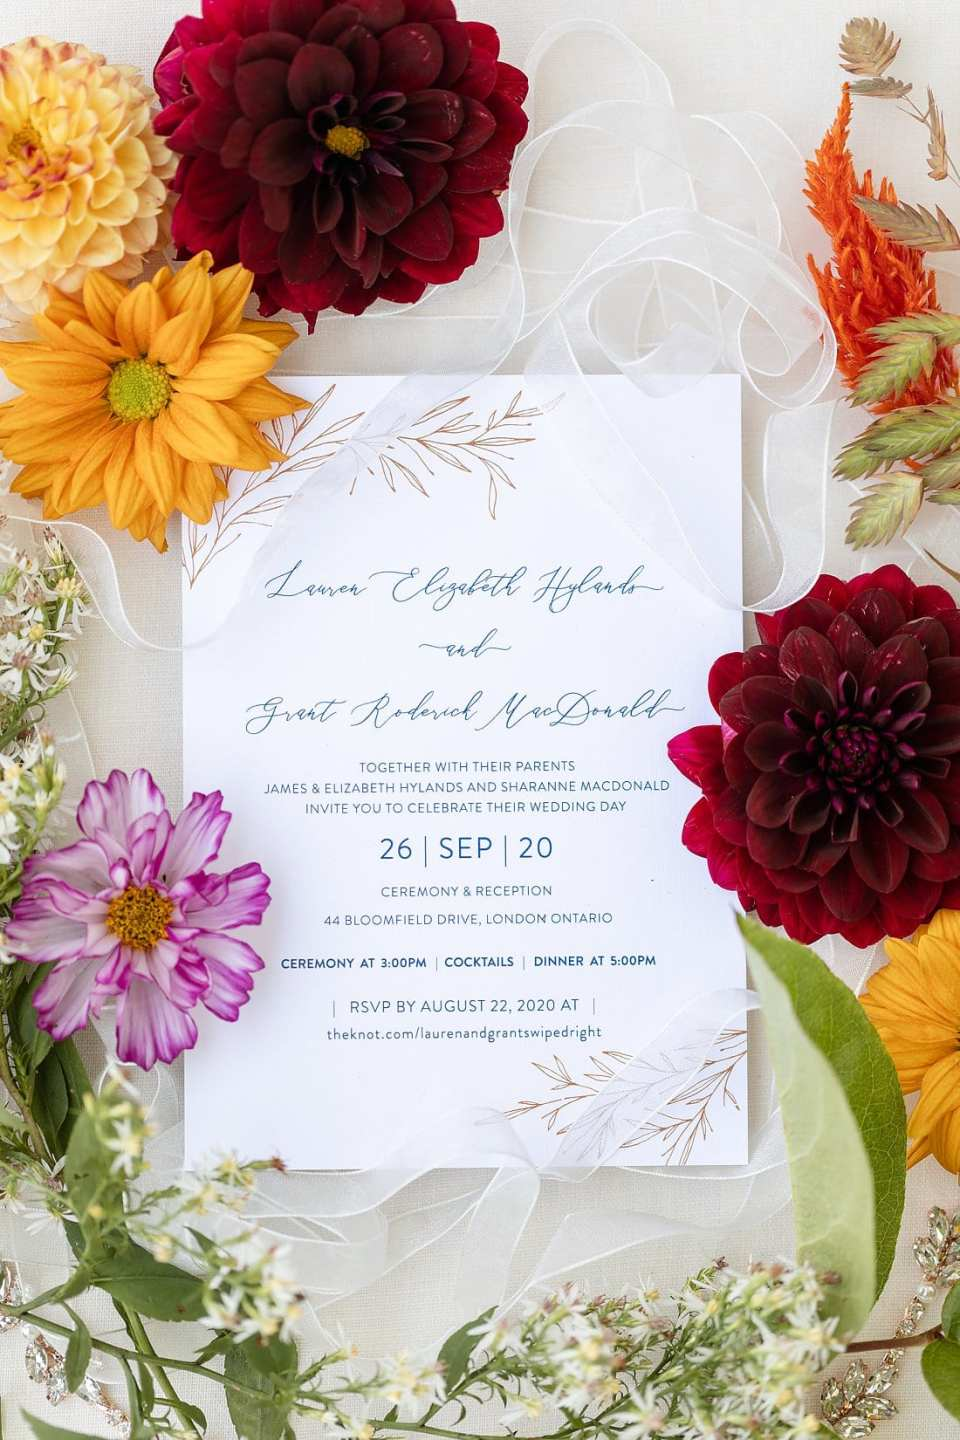 Wedding day invitation surrounded by colourful flowers